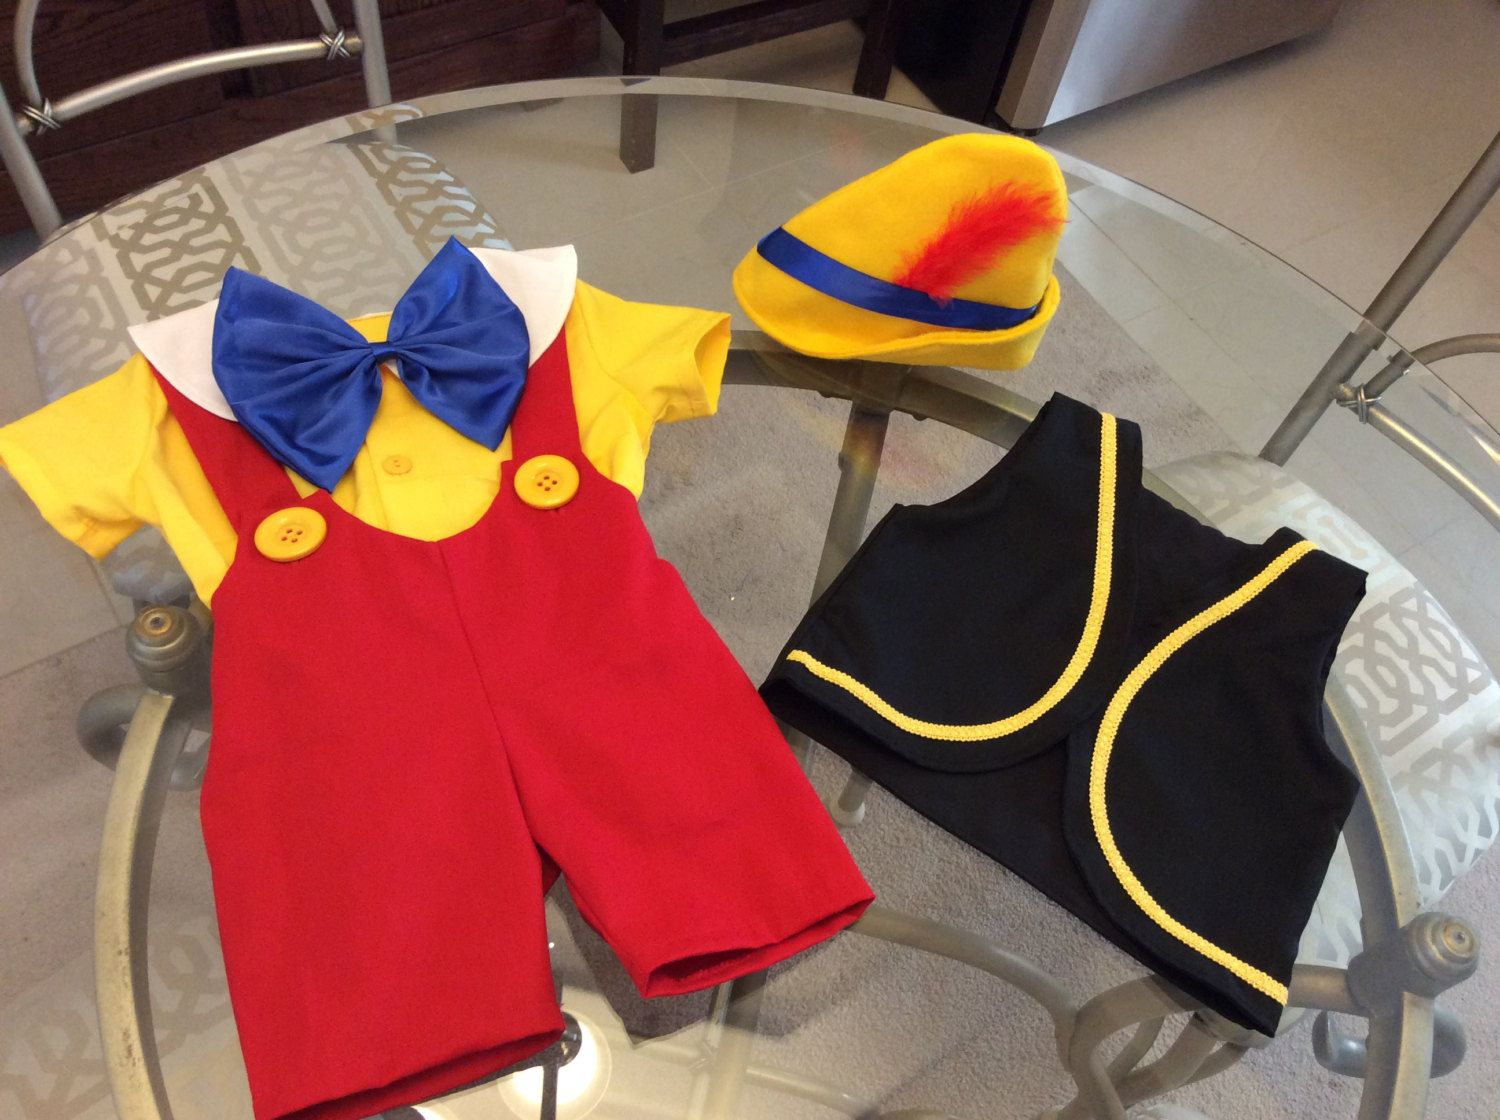 Pinocchio costume 5 pieces shirt short vest bow and hat sizes 6 pinocchio costume sizes 6 months to 5t 5 pieces shirt short vest maxwellsz